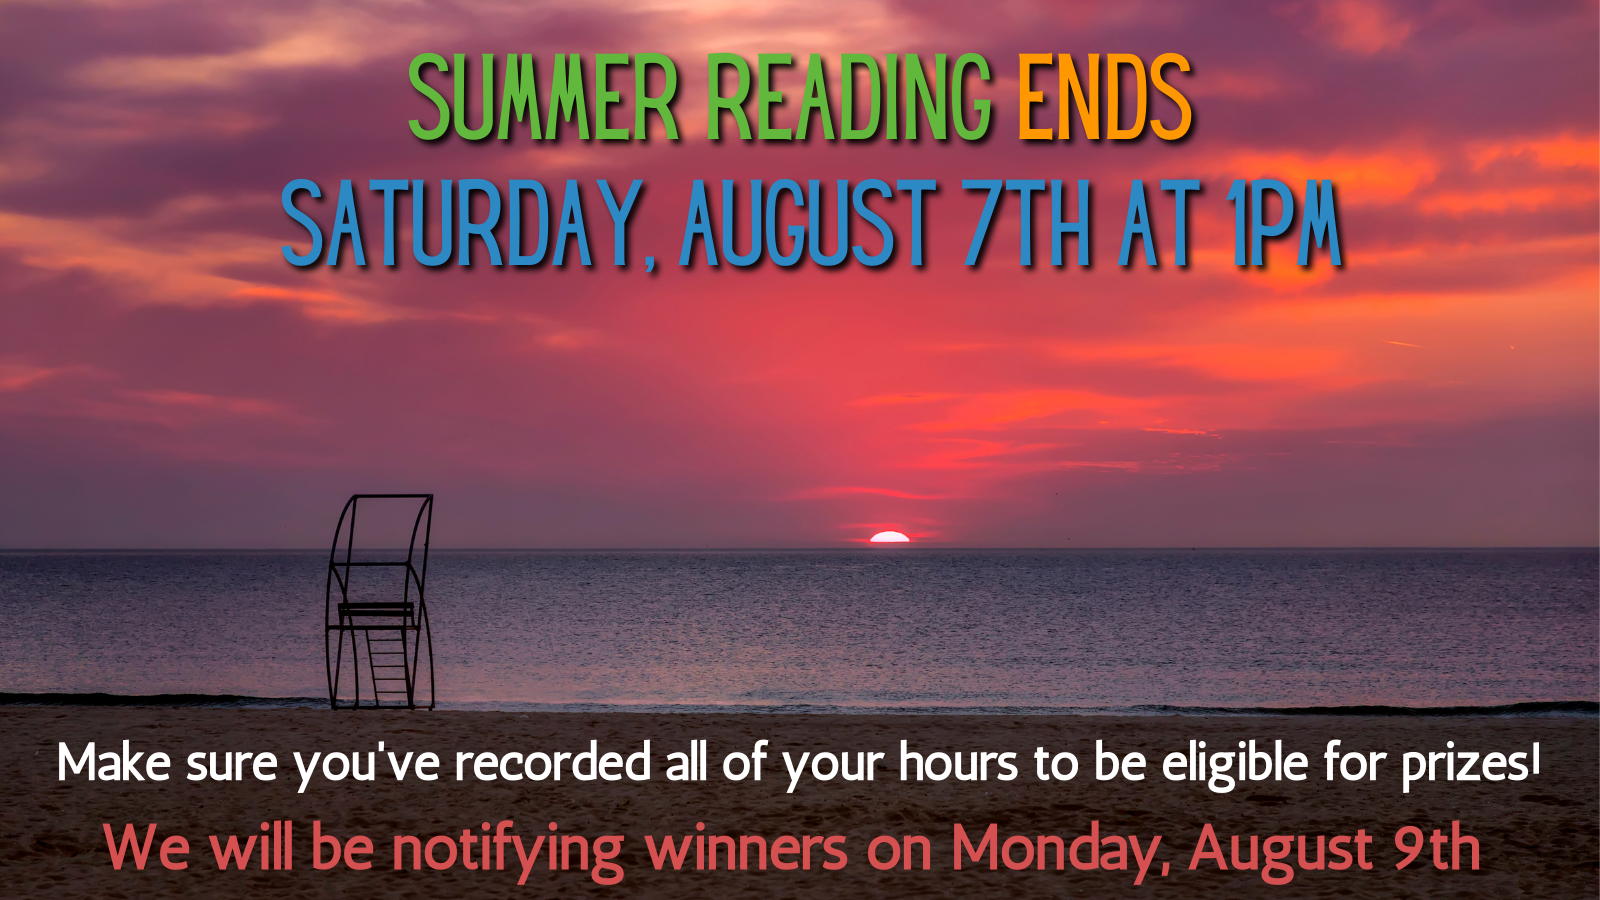 Summer Reading ends August 7